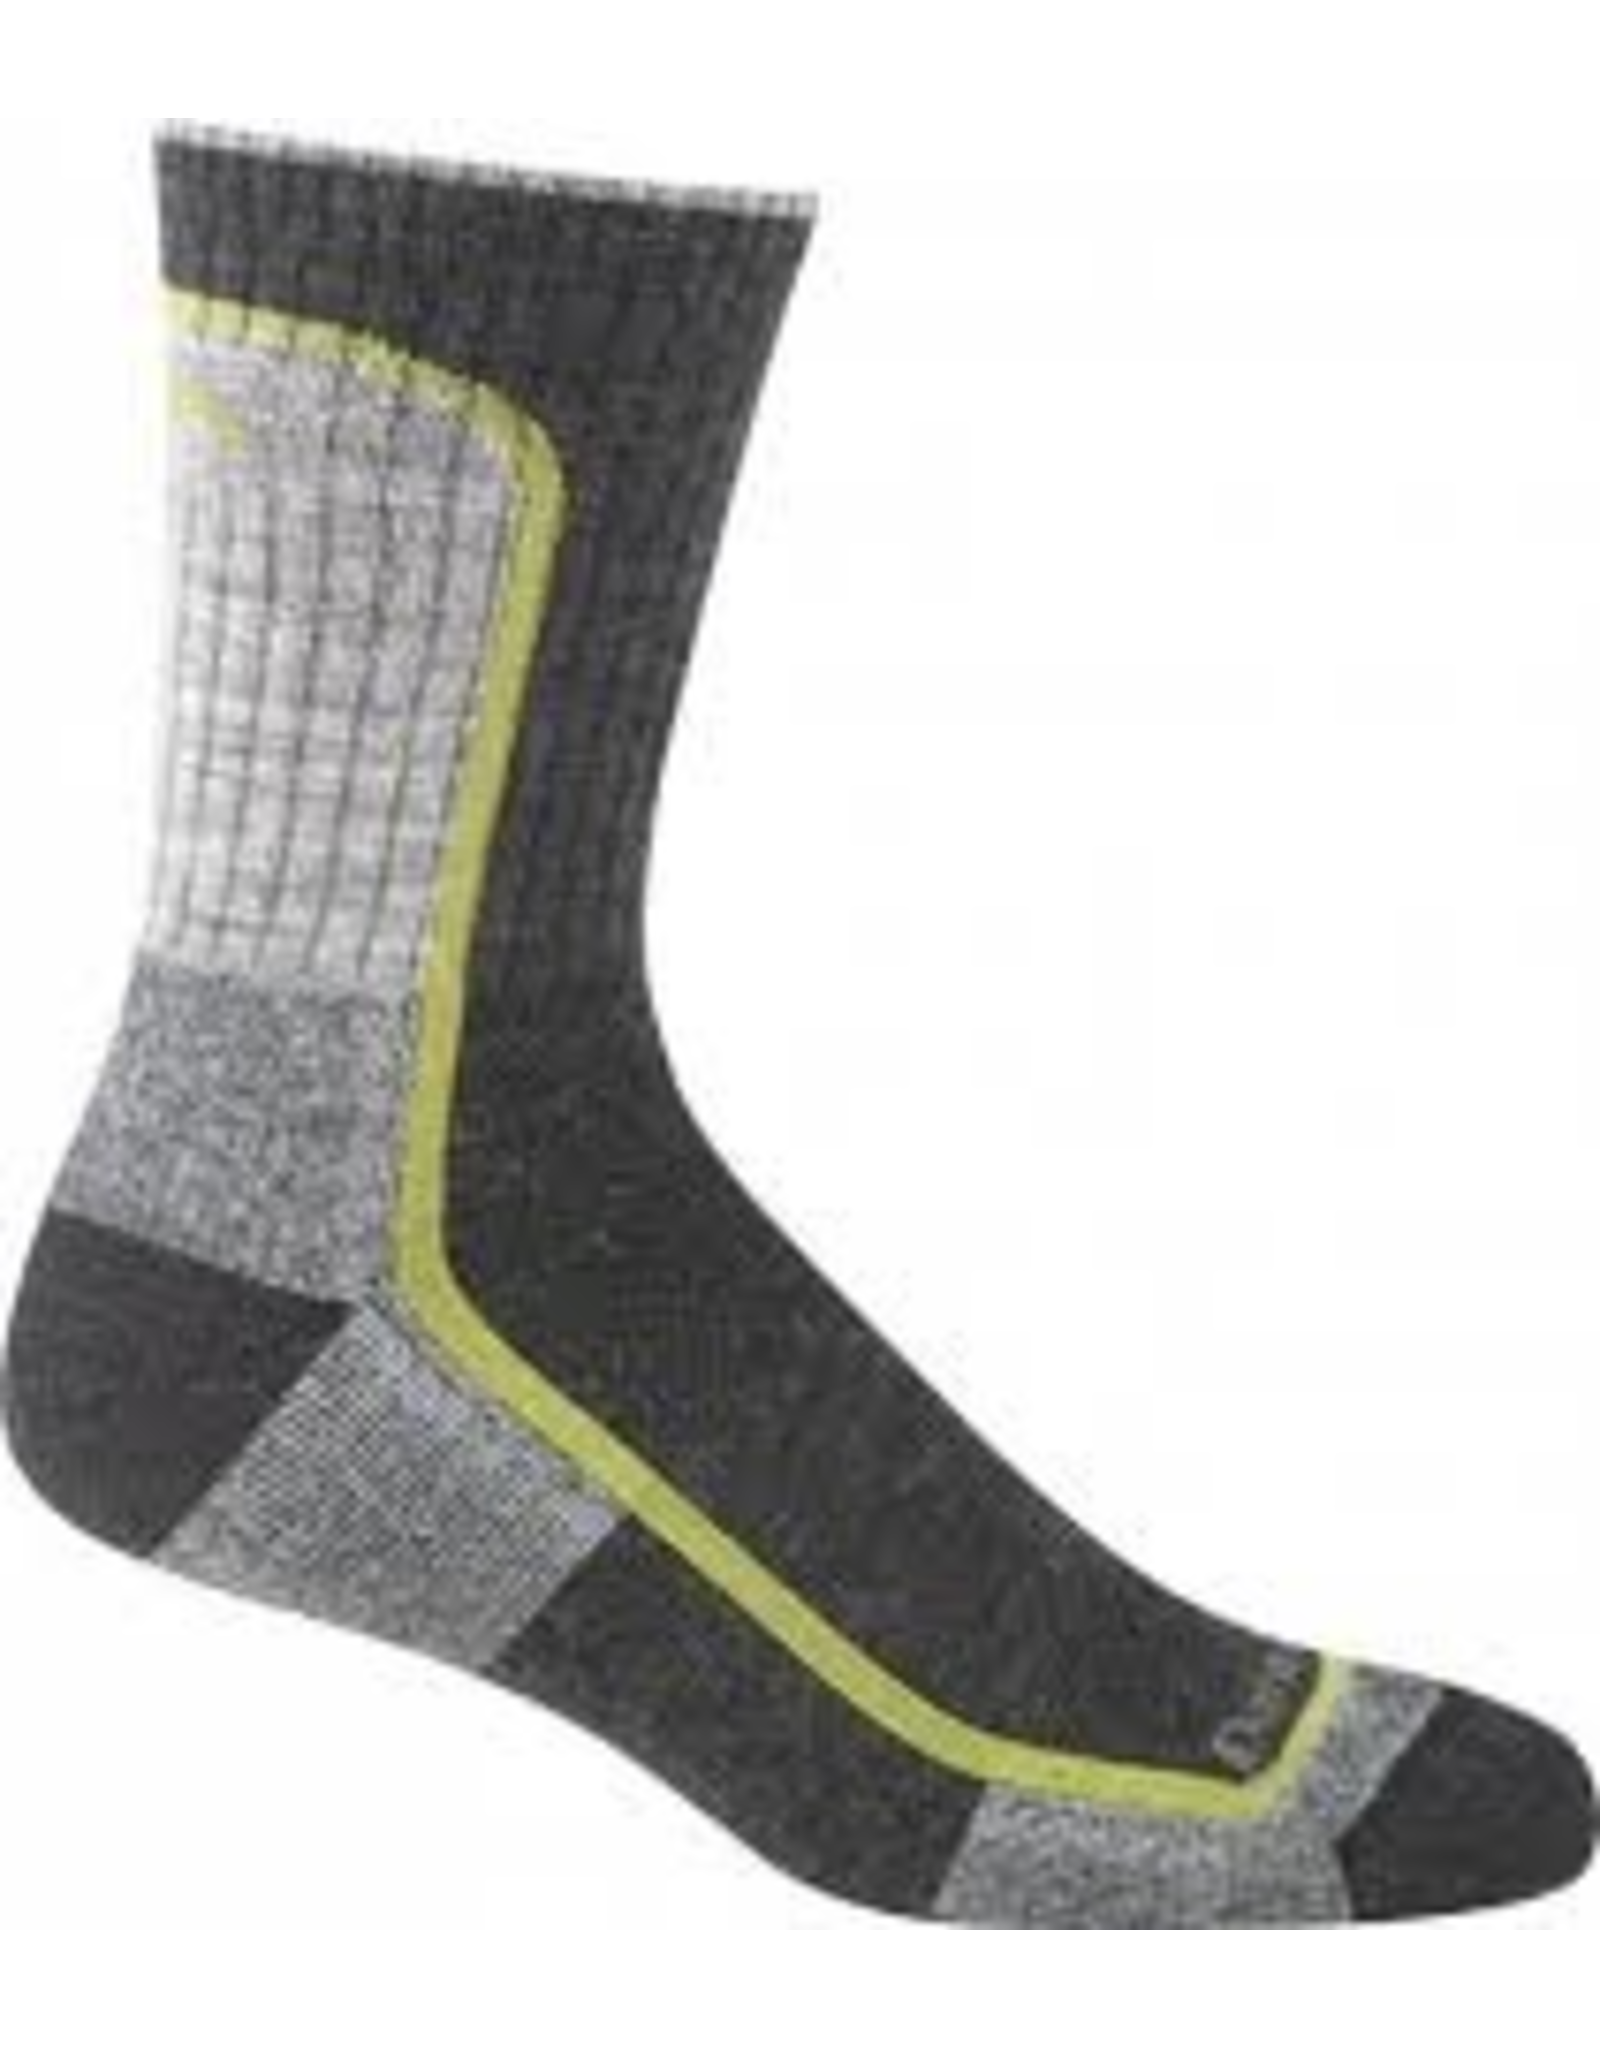 Darn Tough Darn Tough Mens Hike / Trek LIGHT HIKER MICRO CREW CUSHION Sock